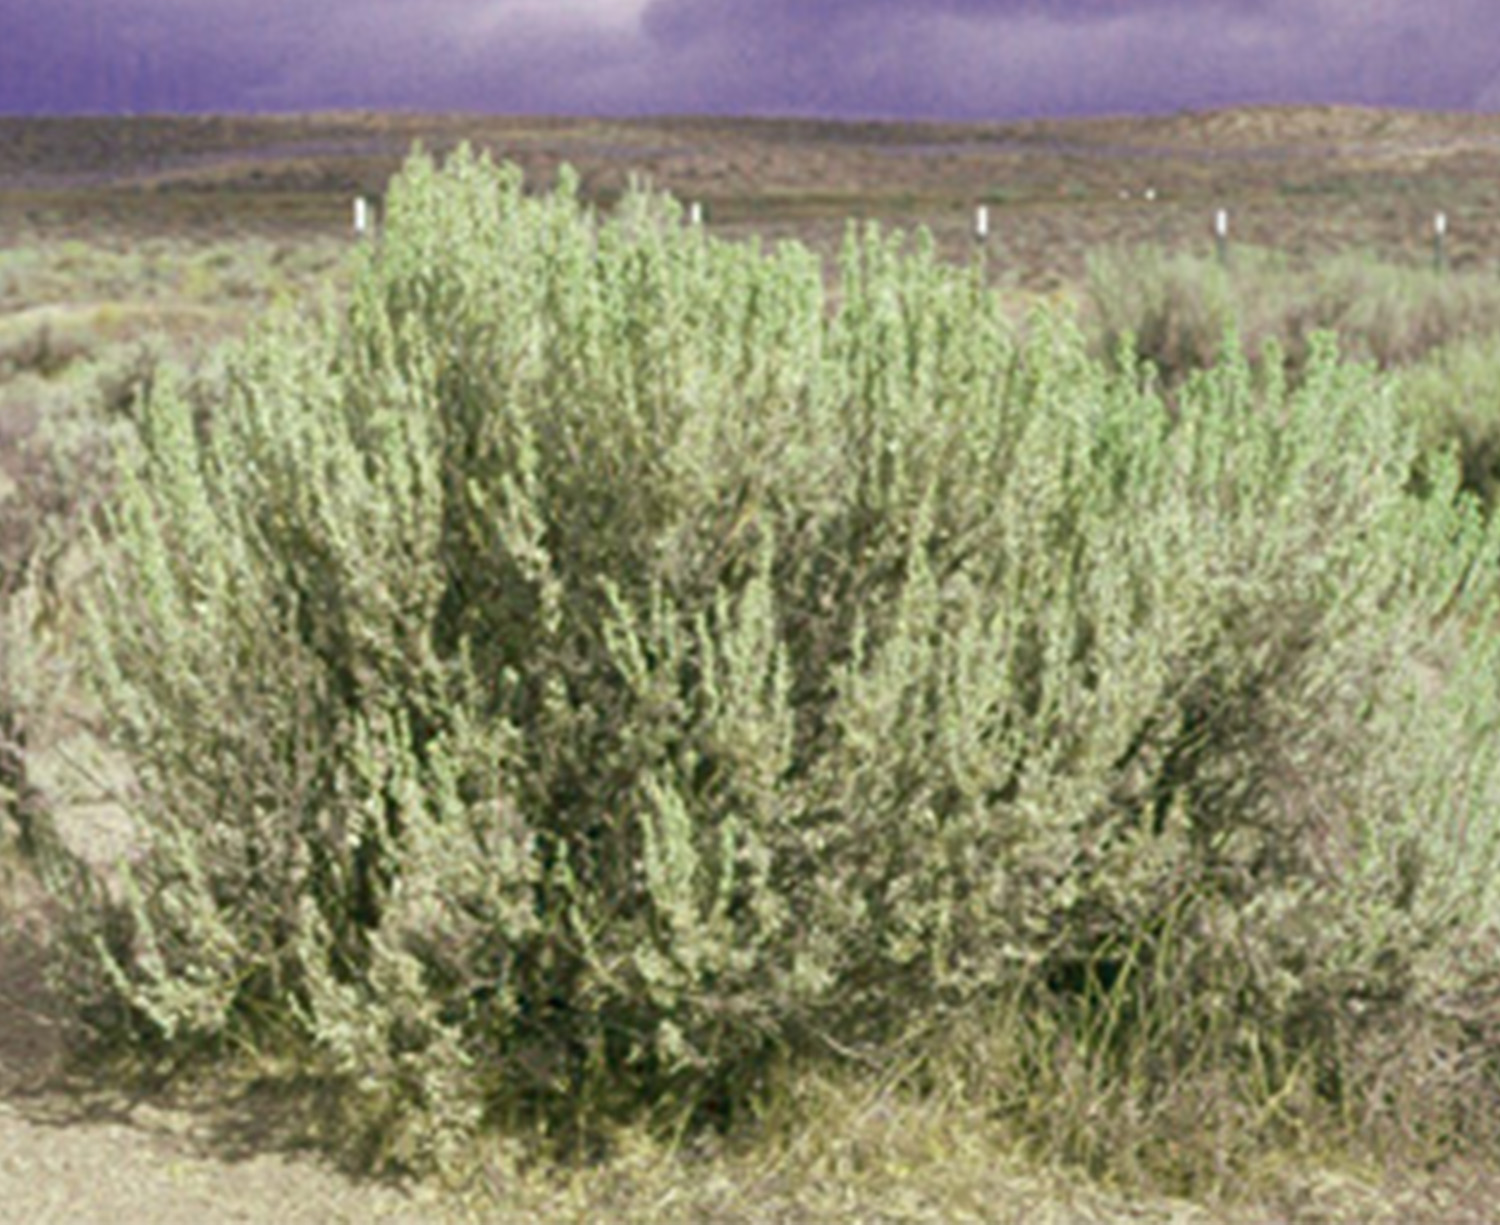 Wyoming Big Sagebrush